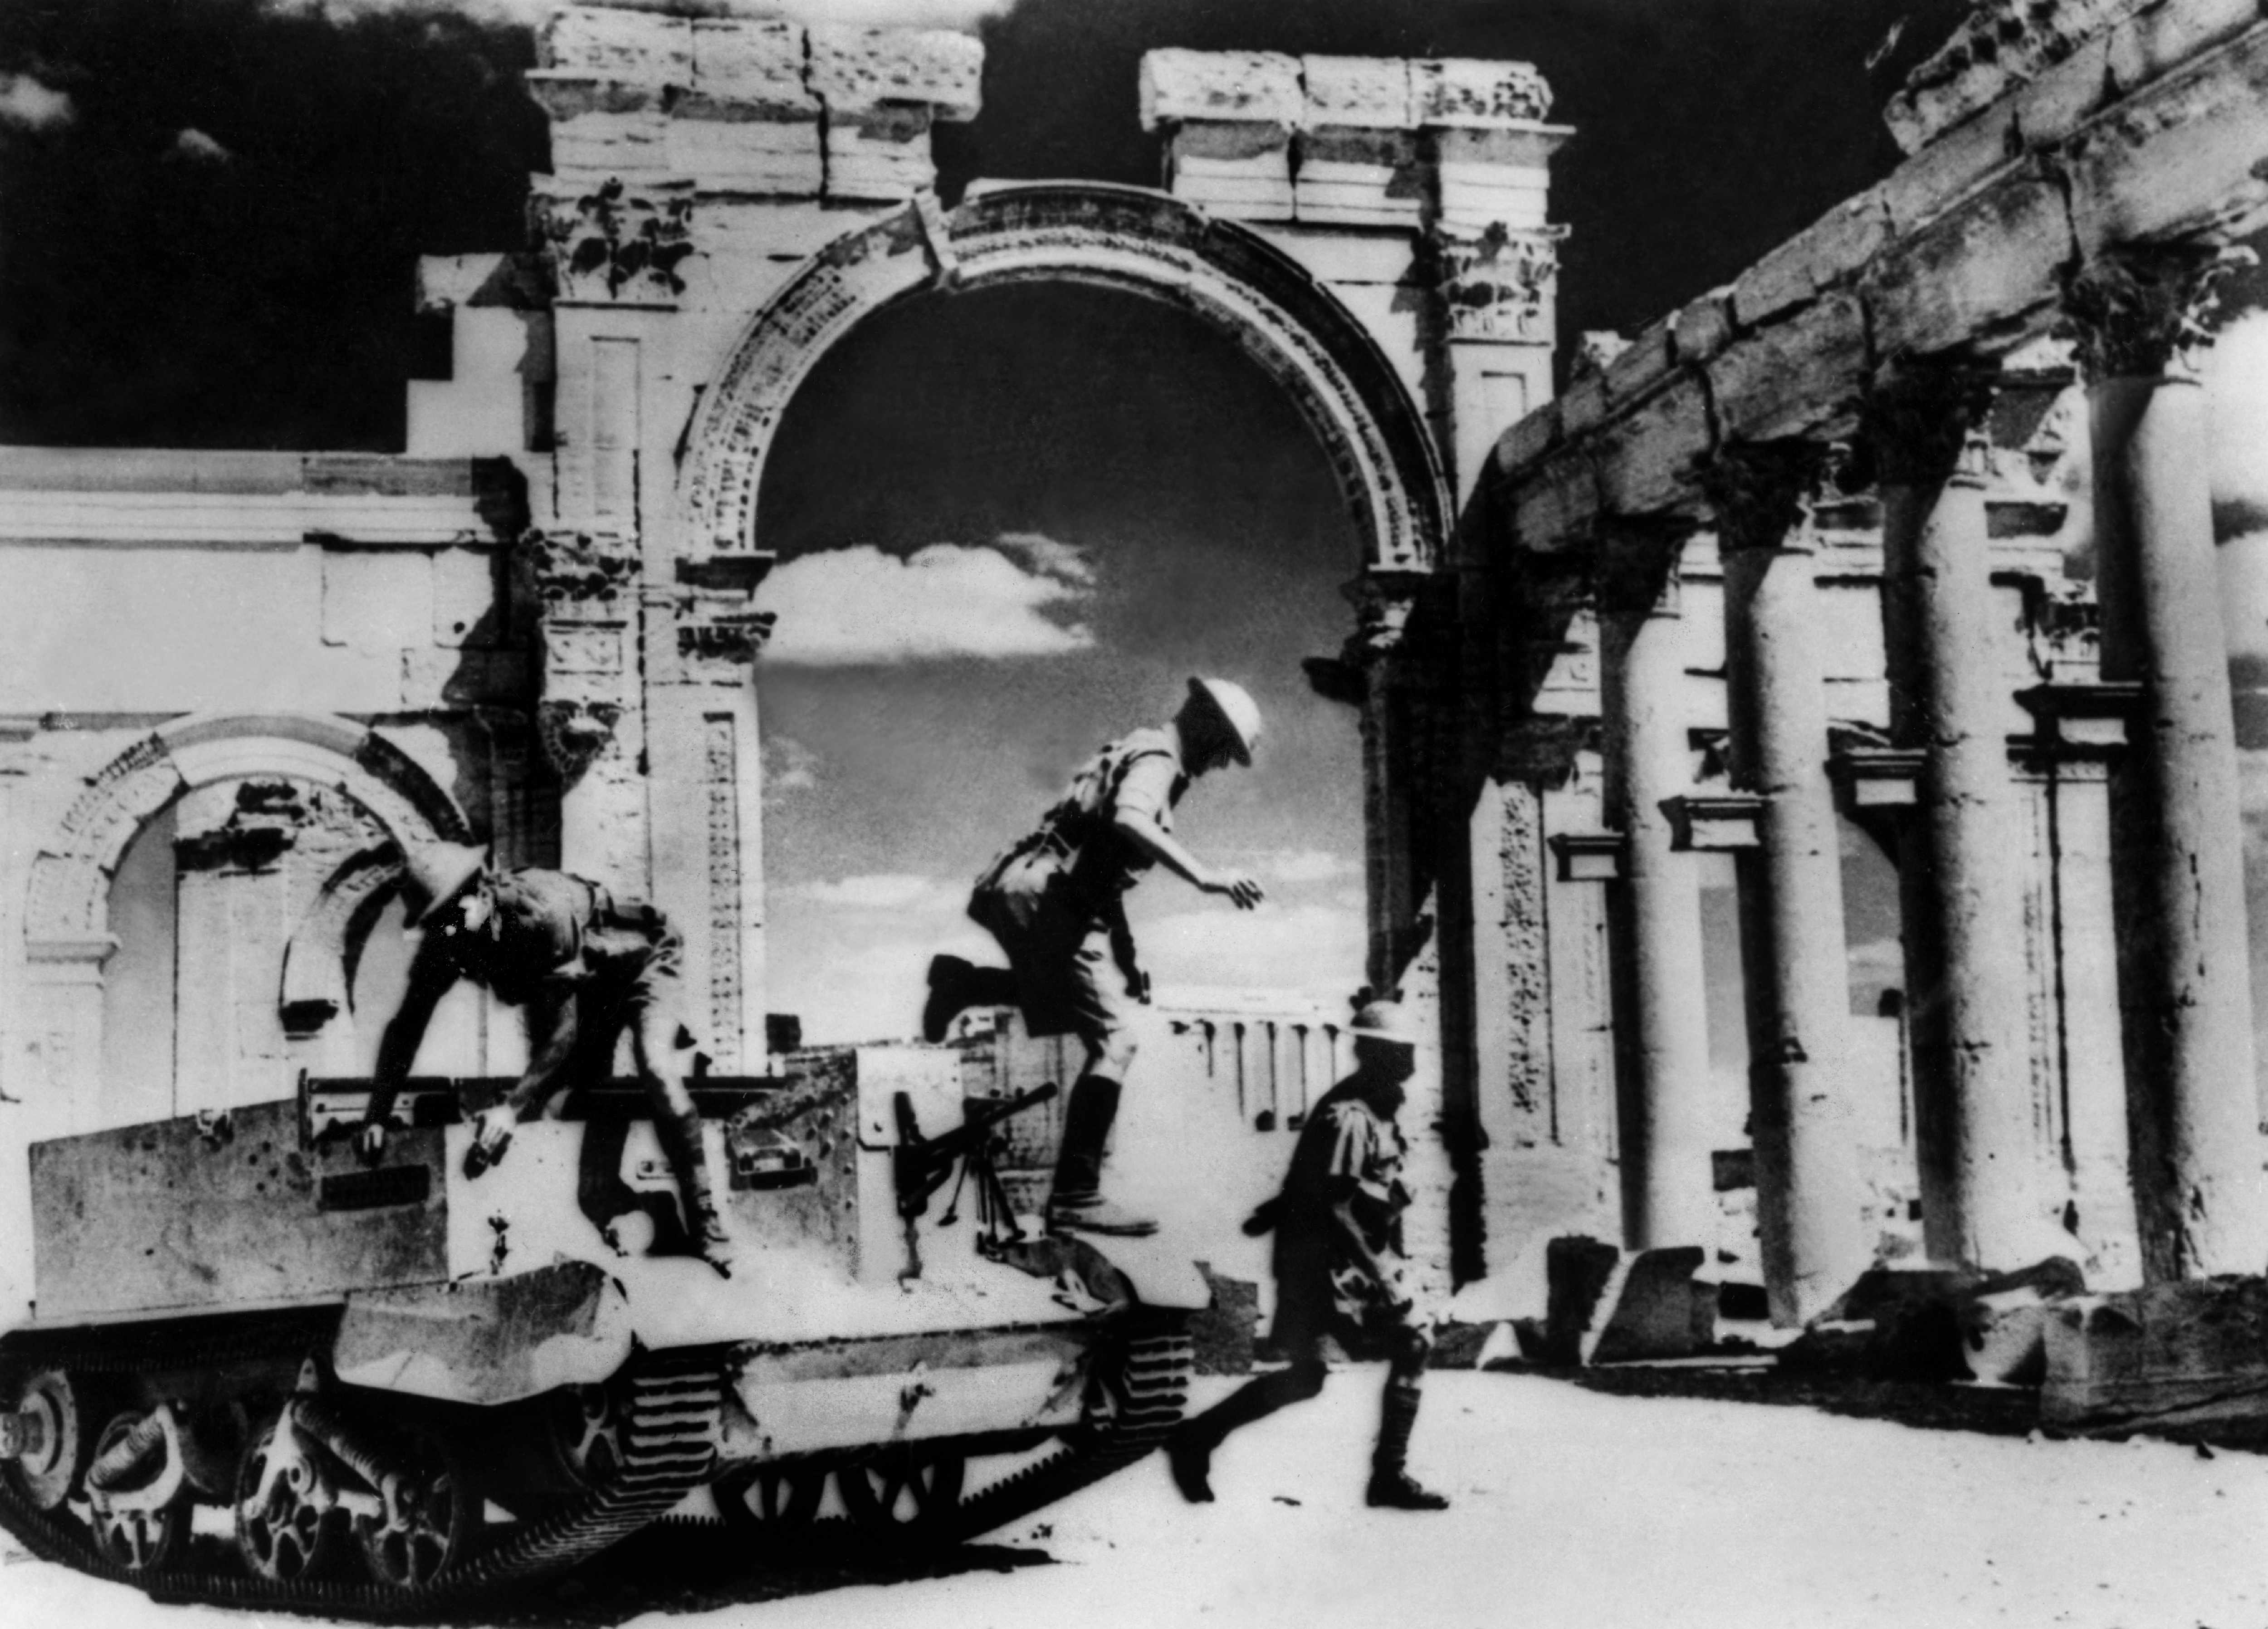 English soldiers in the ruins of Palmyre in charge of taking over the Syrian Territory occupied by Vichy's France. (Photo by Keystone-France/Gamma-Keystone via Getty Images)